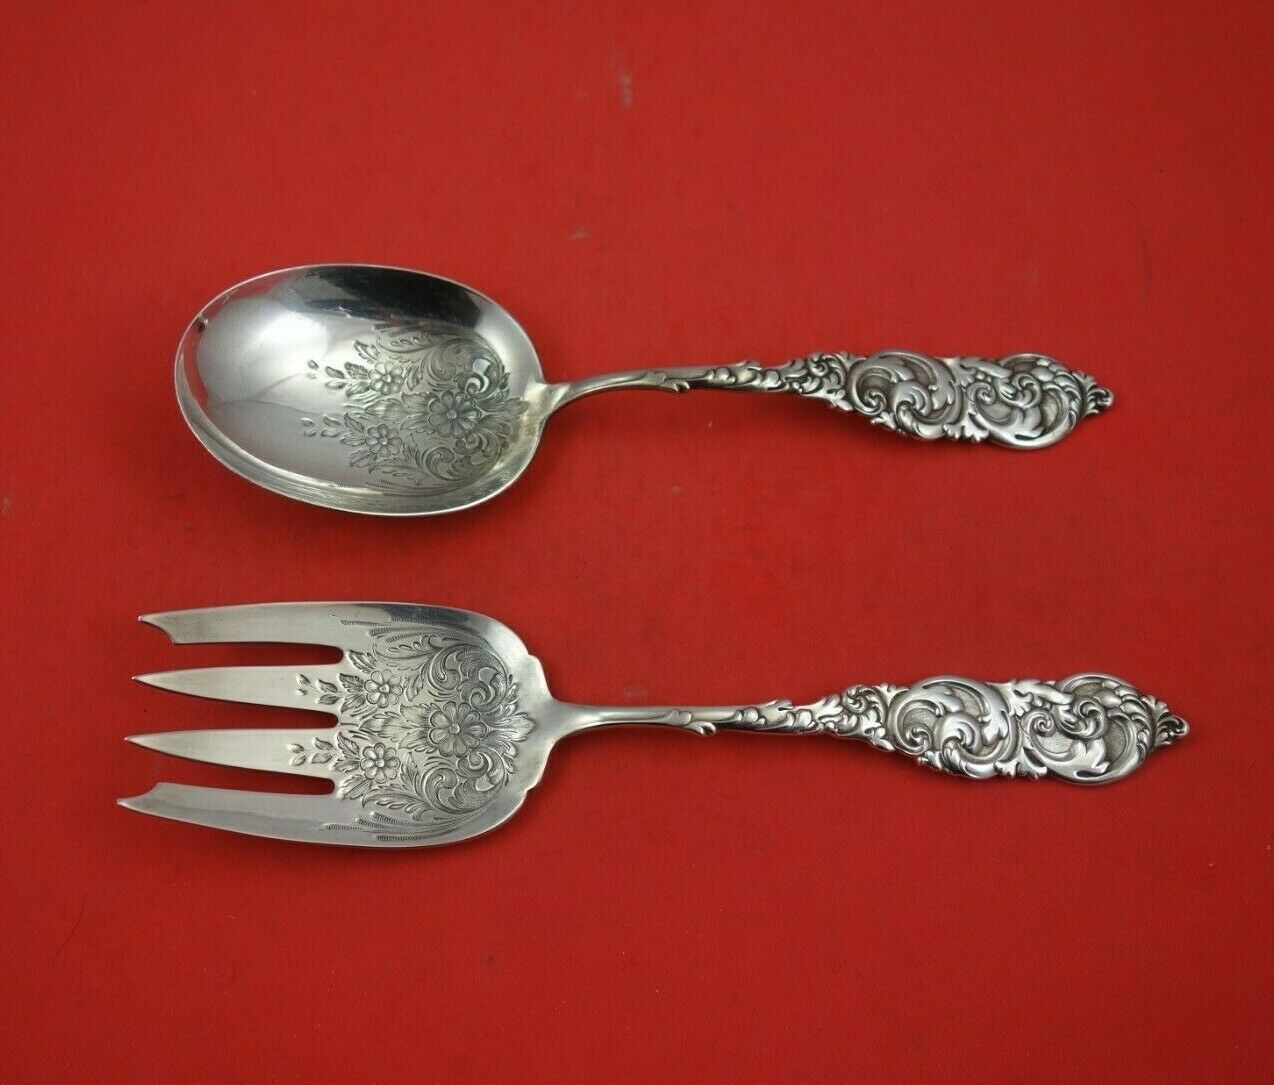 Primary image for Gladstone by Amston Sterling Silver Salad Serving Set 2pc with Embossed Flowers